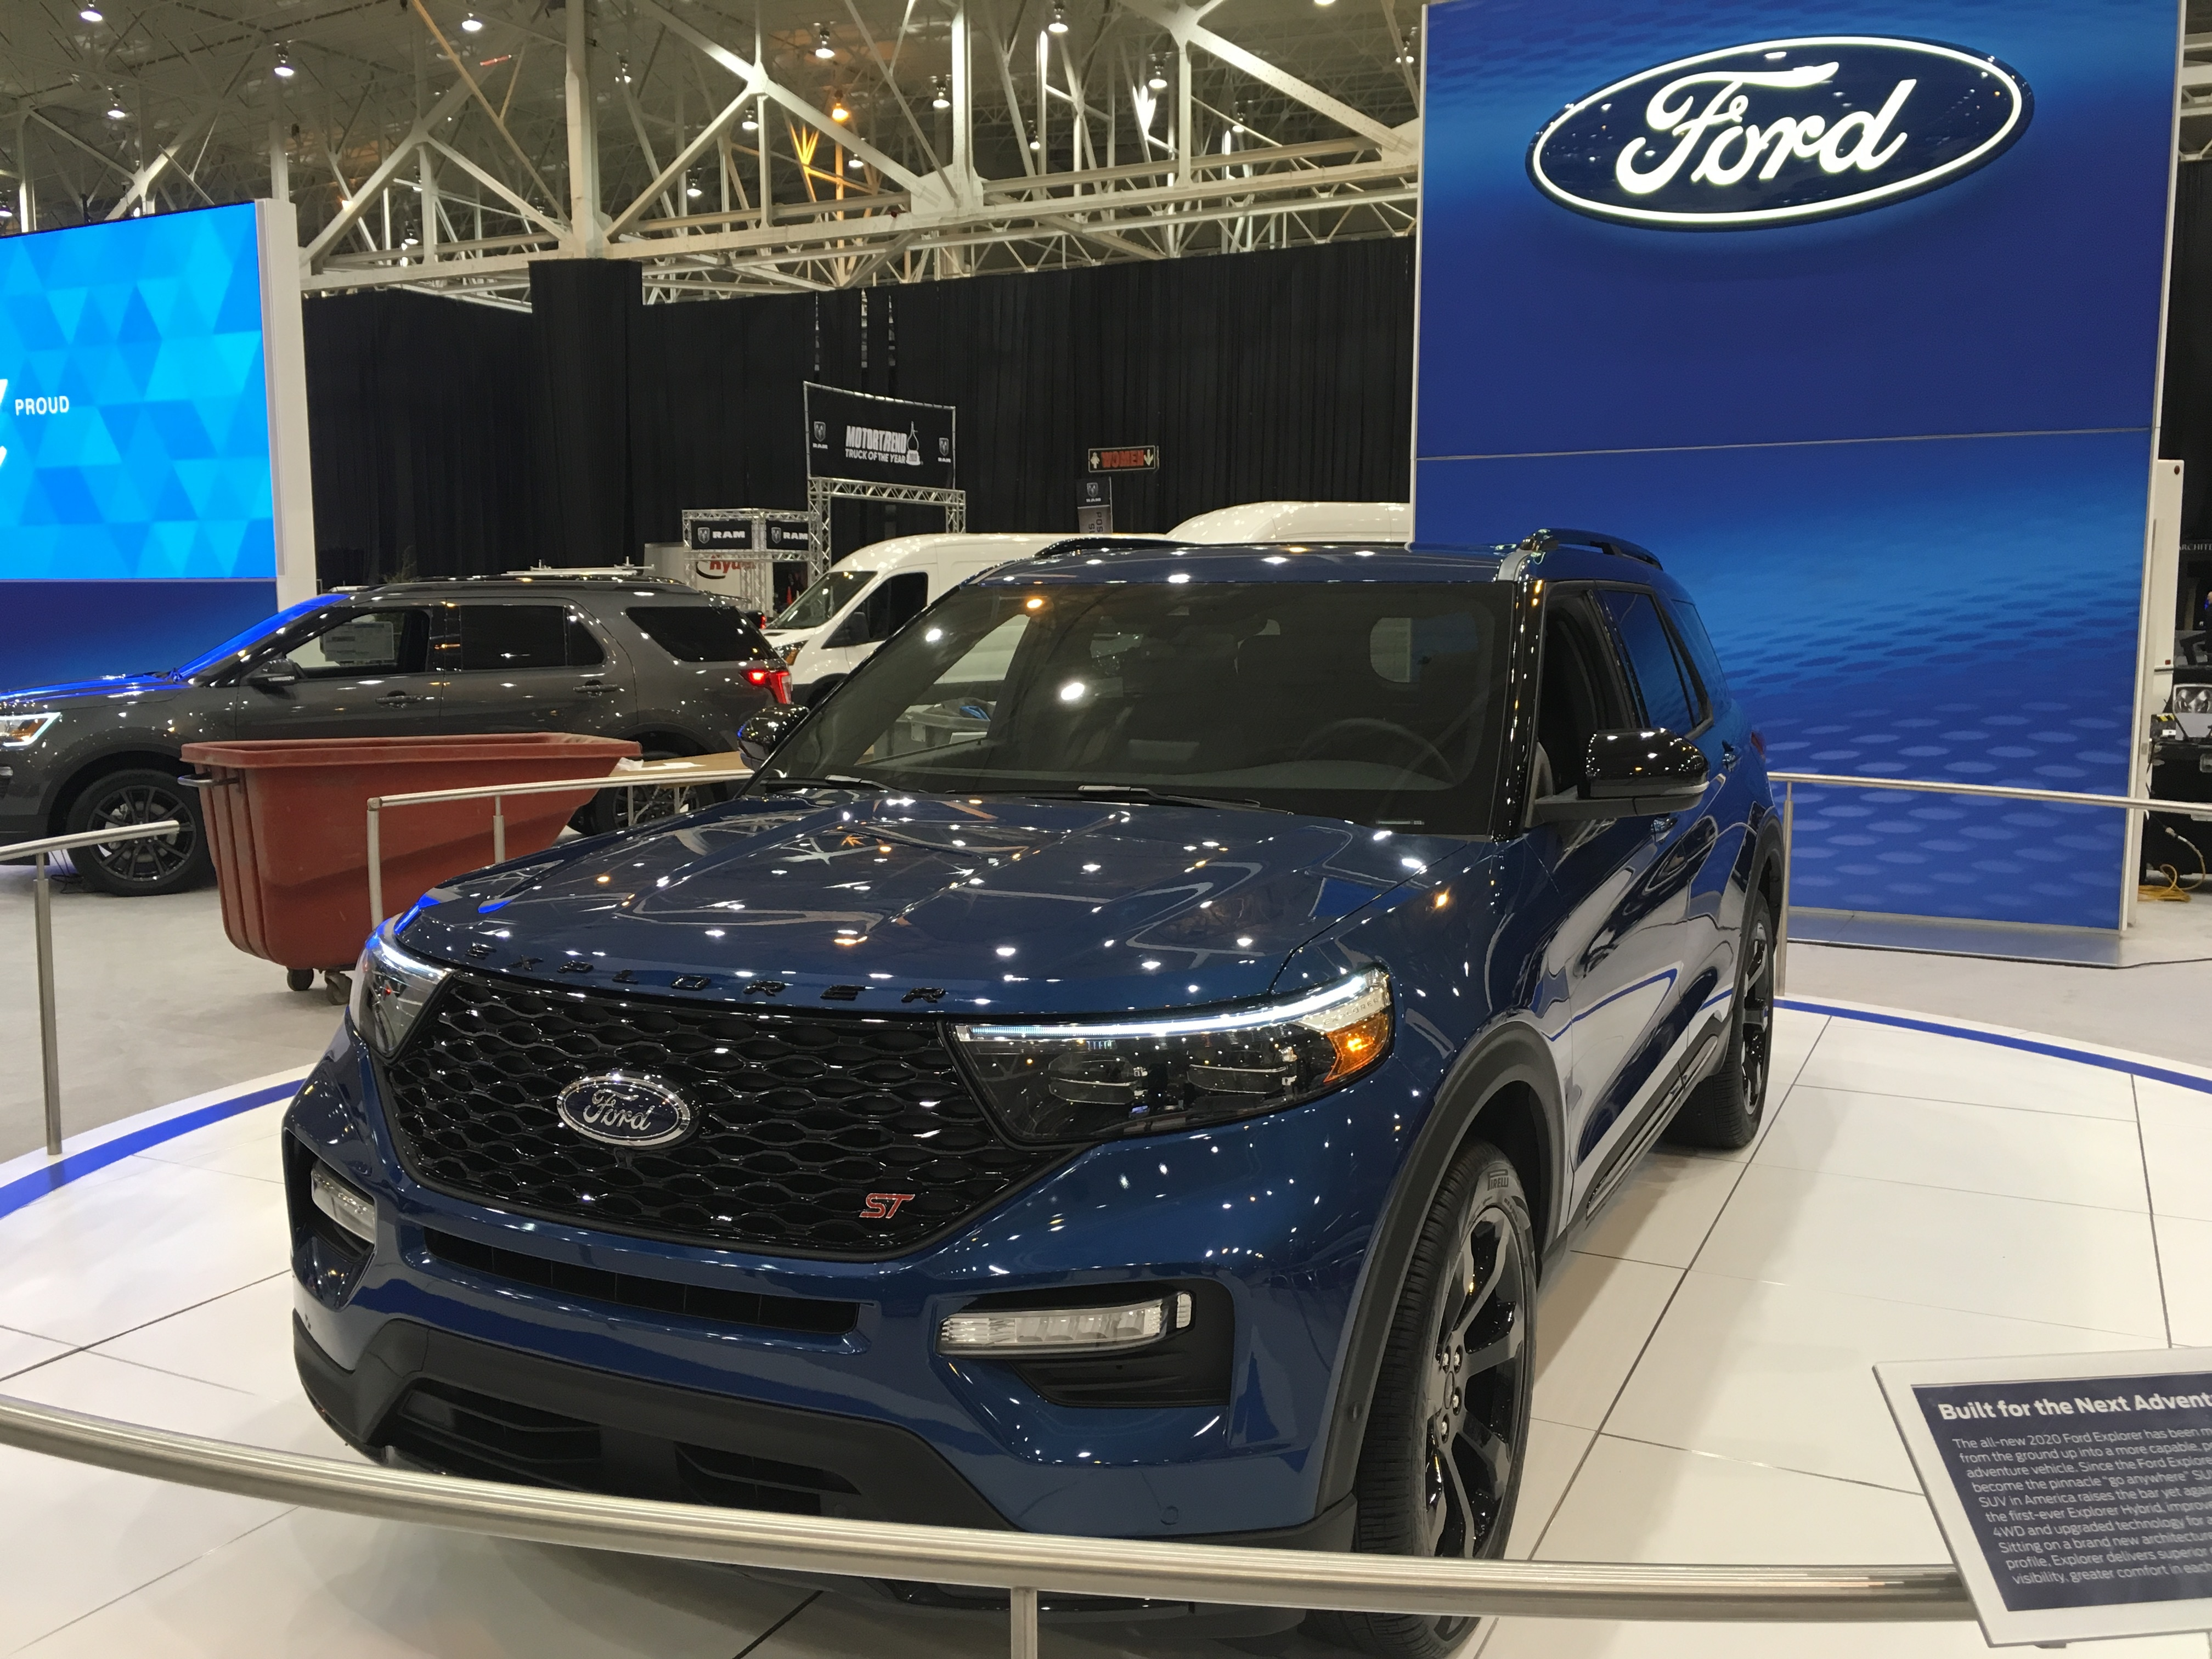 Cleveland Auto Show 2020.Real Photos Of The 2020 Ford Explorer George Waikem Ford Inc